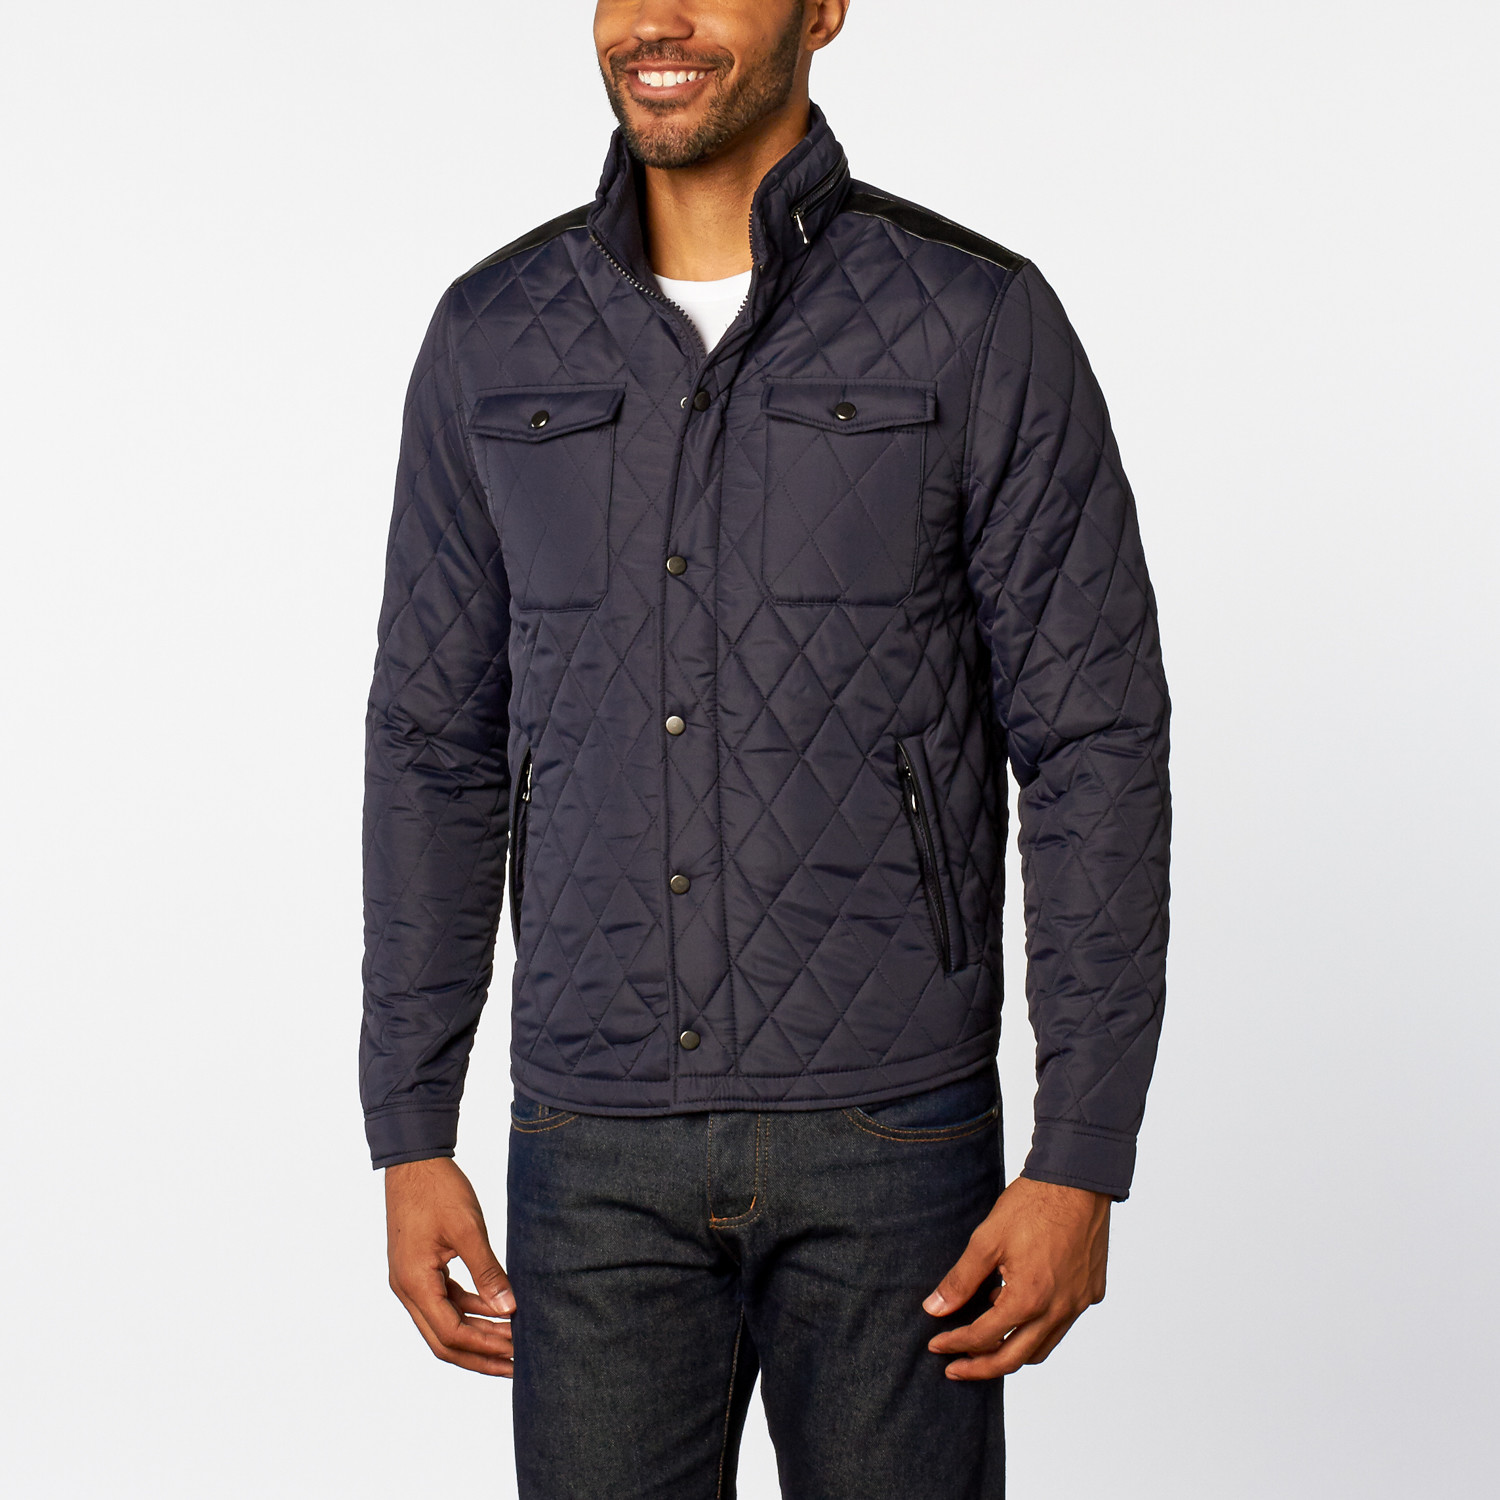 Diamond Quilted Jacket // Navy (S) - ZINOVIZO - Touch of Modern : quilted jacket navy - Adamdwight.com